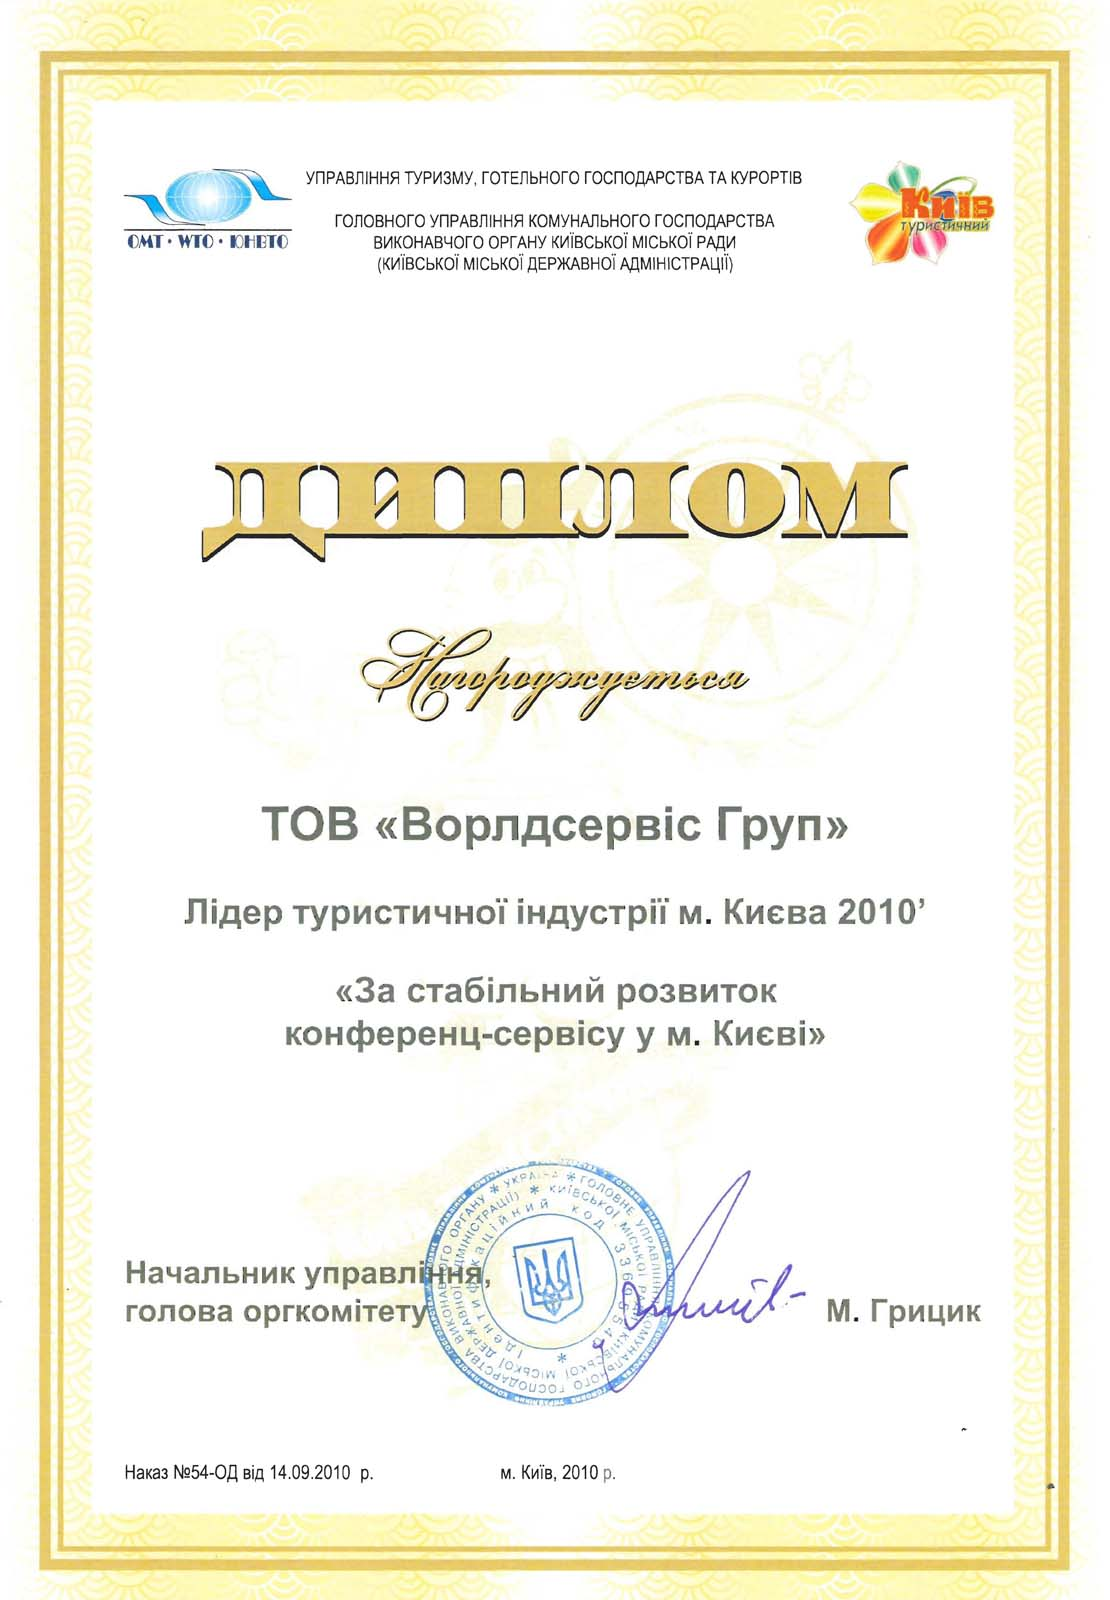 Worldservice group award